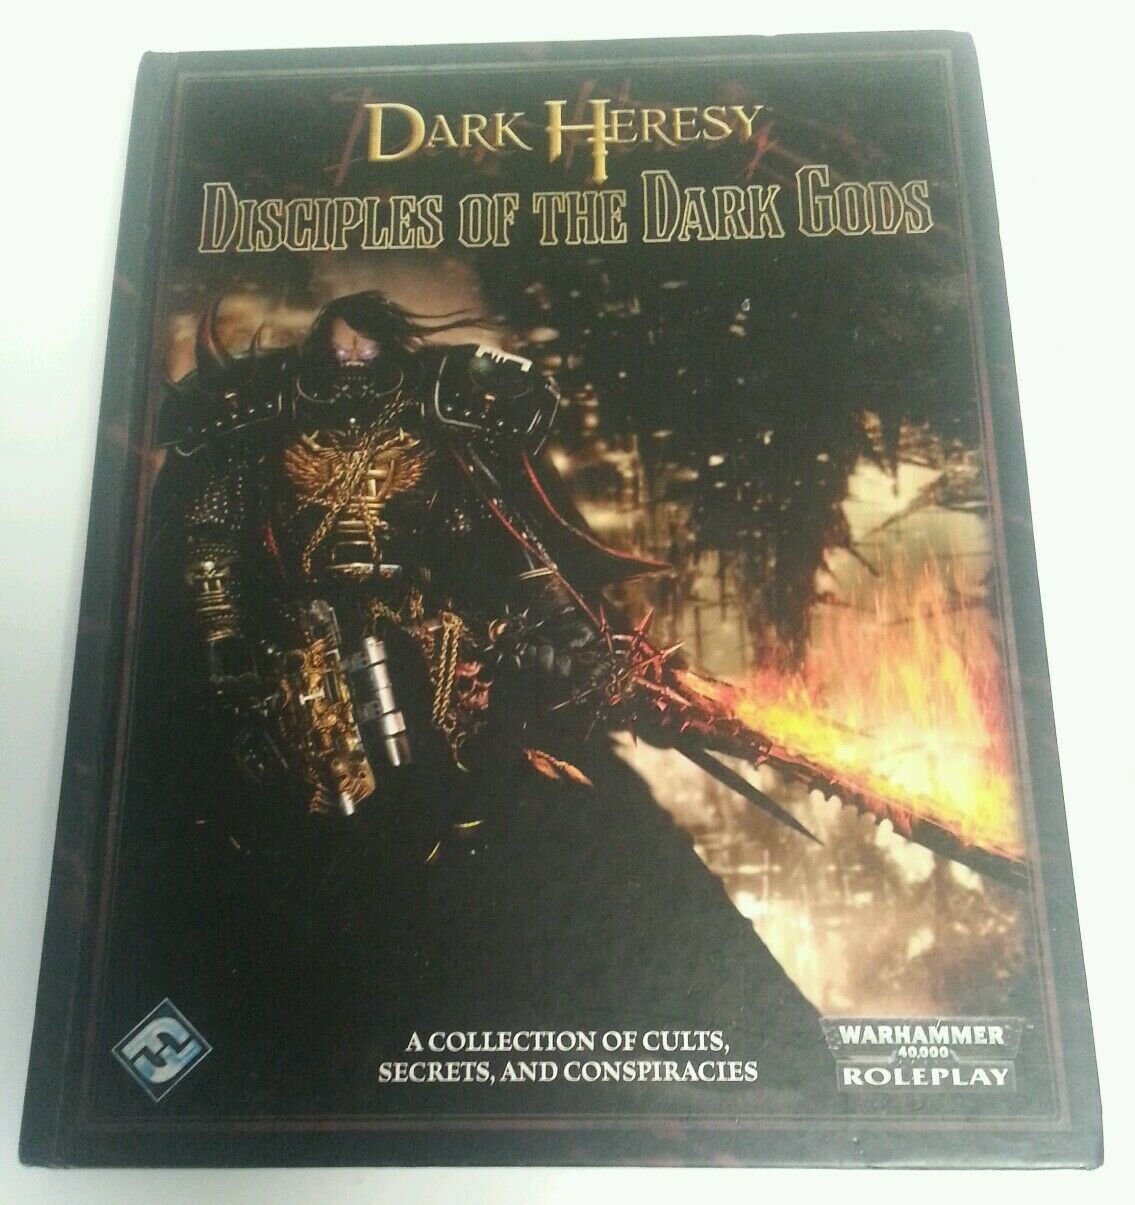 BOOK - Warhammer 40,000 Dark Heresy Disciples Of The Dark Gods Hardback 2008 RPG